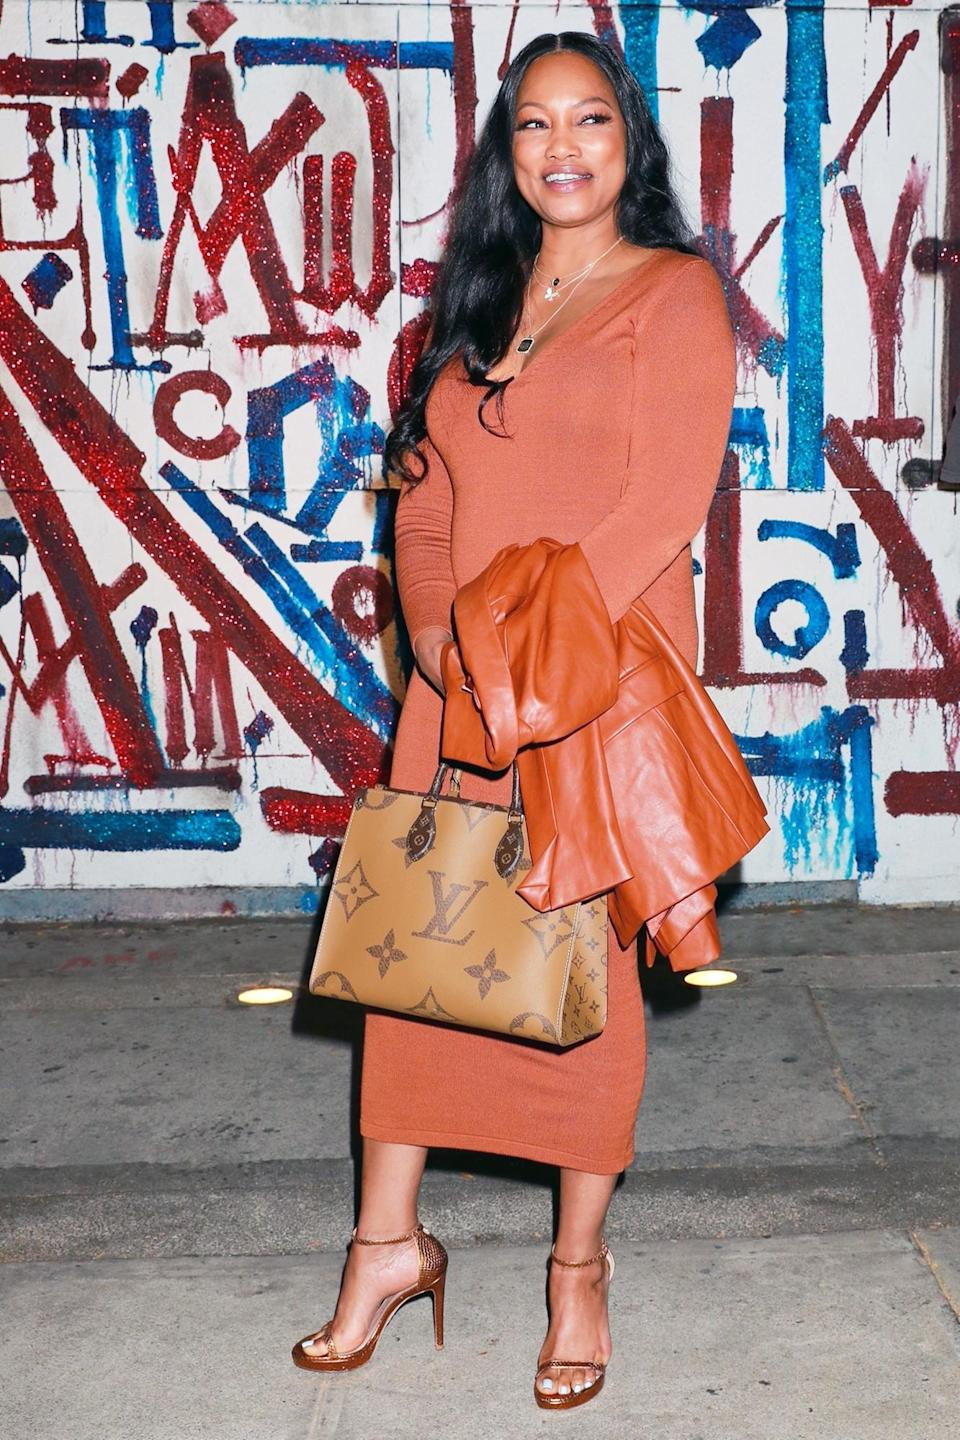 <p><em>Real Housewives of Beverly Hills</em> star Garcelle Beauvais arrives for an early dinner at Craig's on June 9 in West Hollywood.</p>